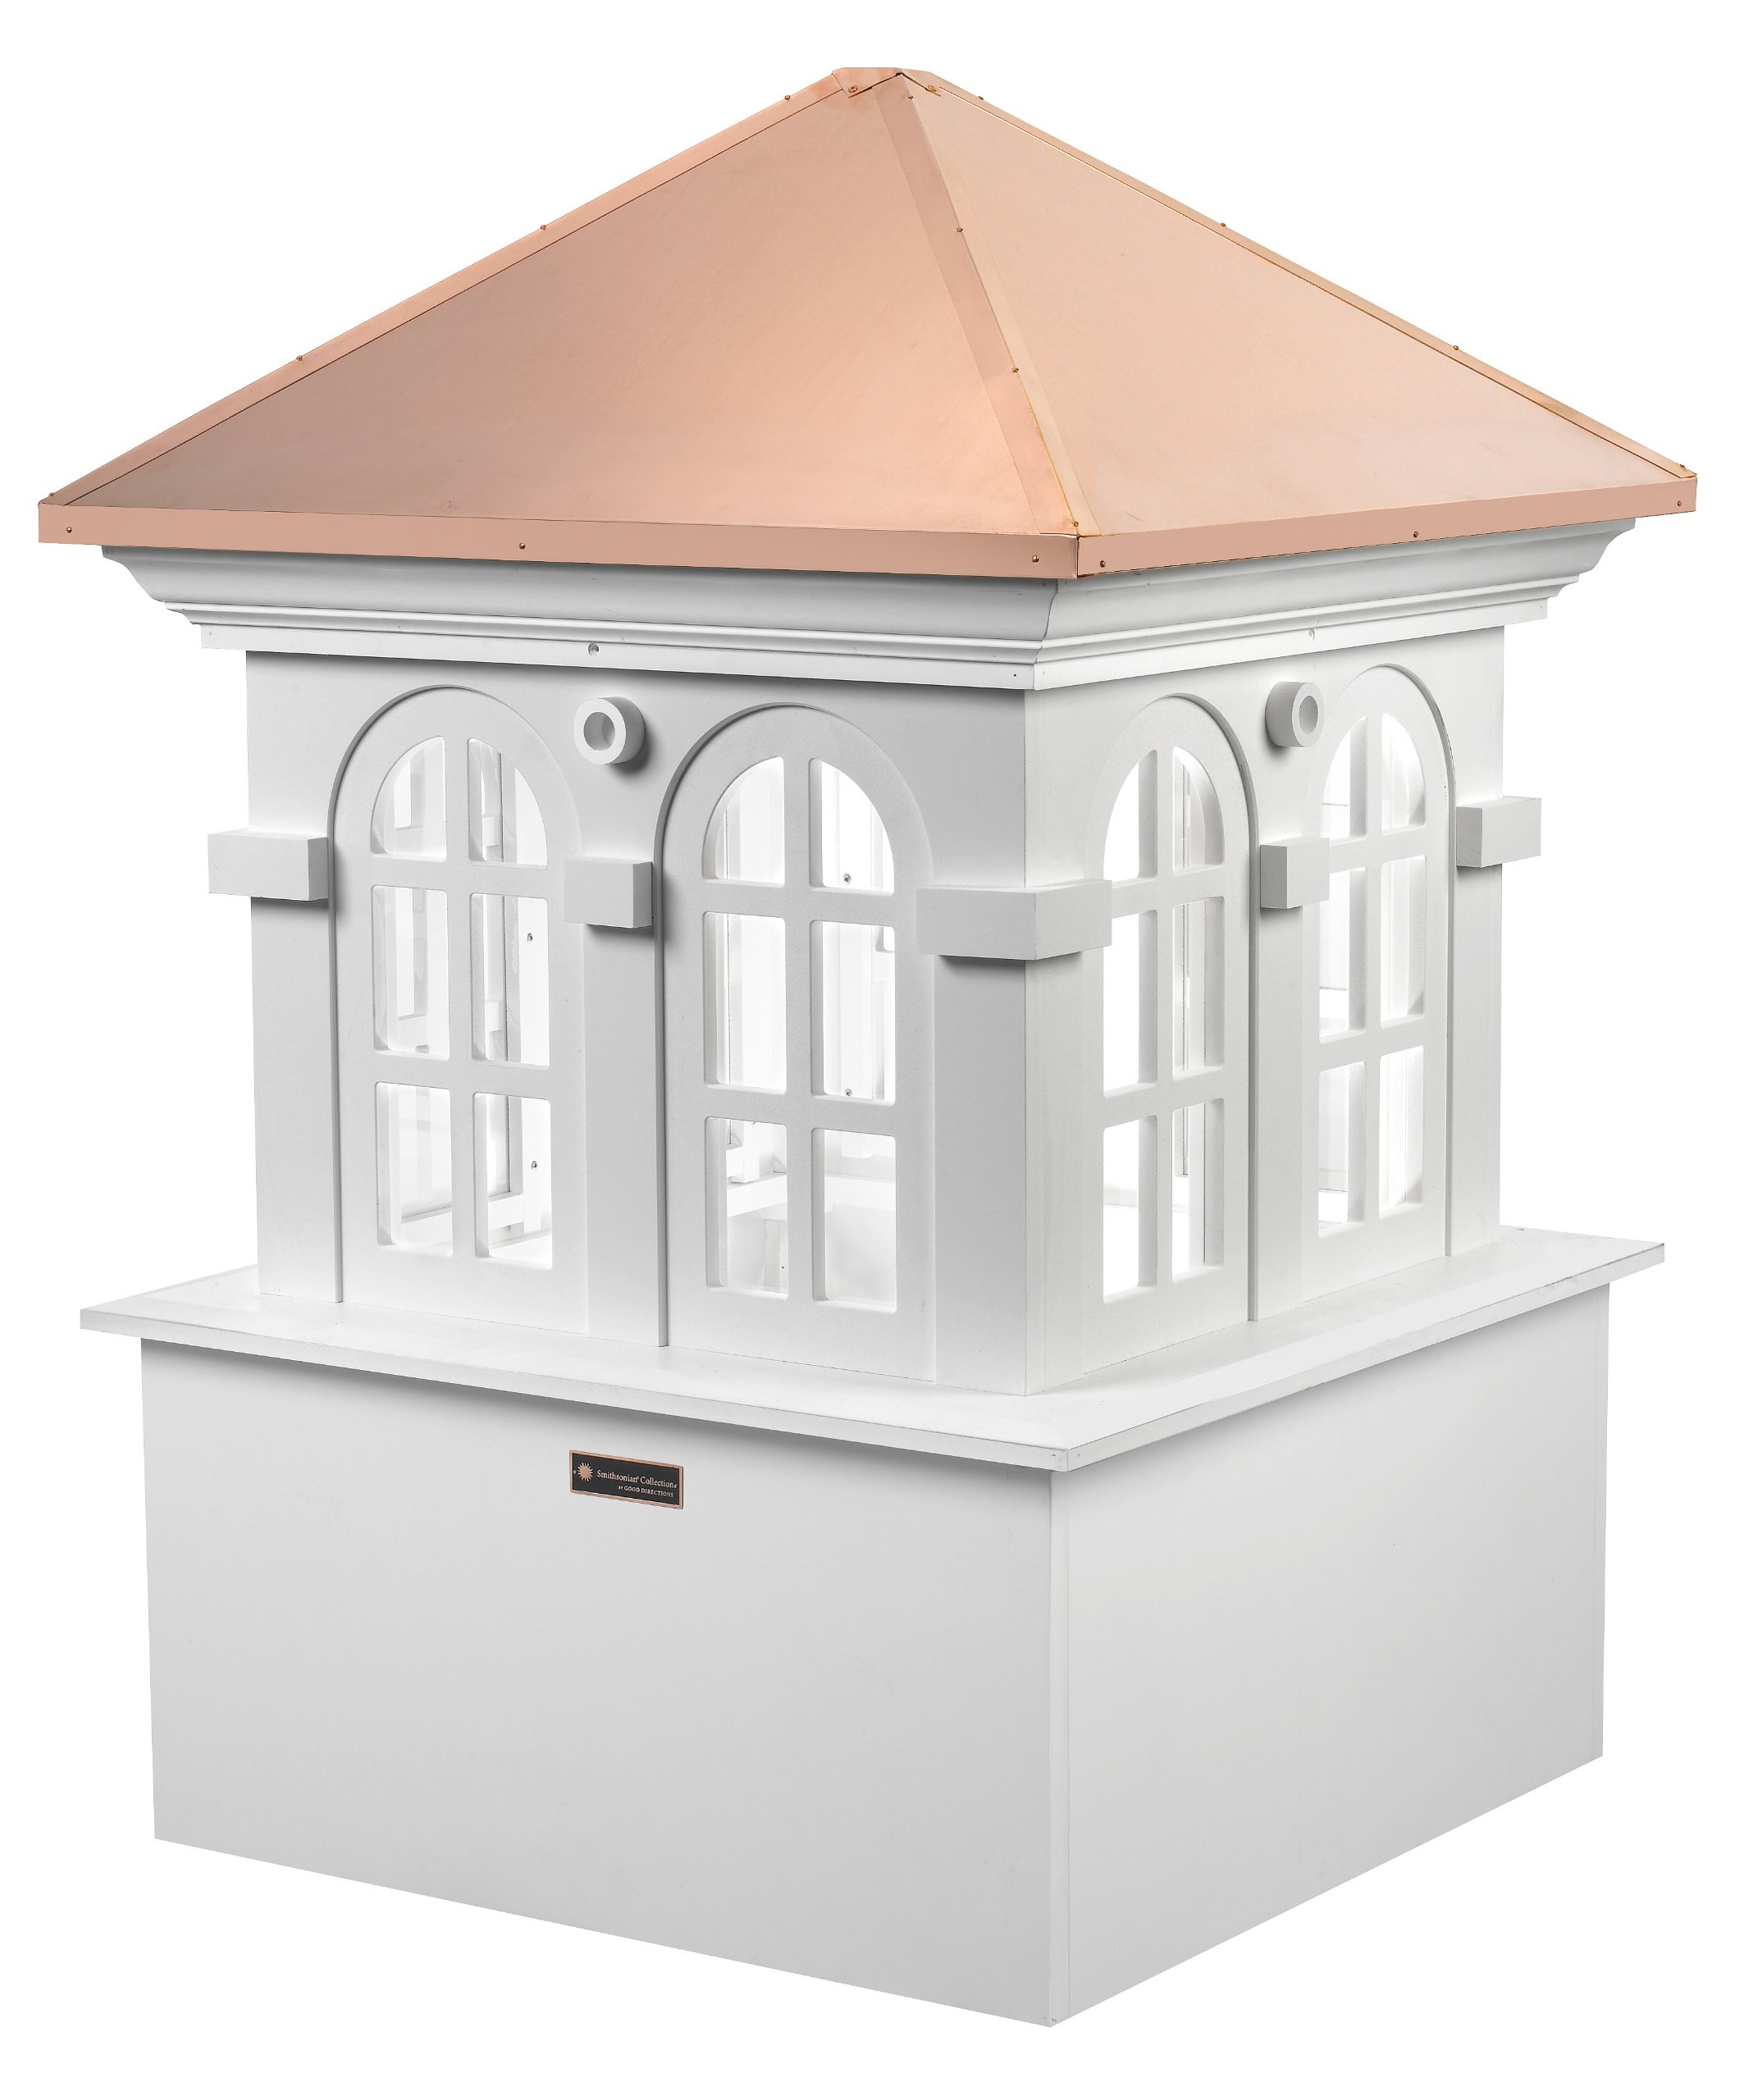 Good Directions Smithsonian Chesapeake Vinyl Cupola with Copper Roof, 30'' x 45''